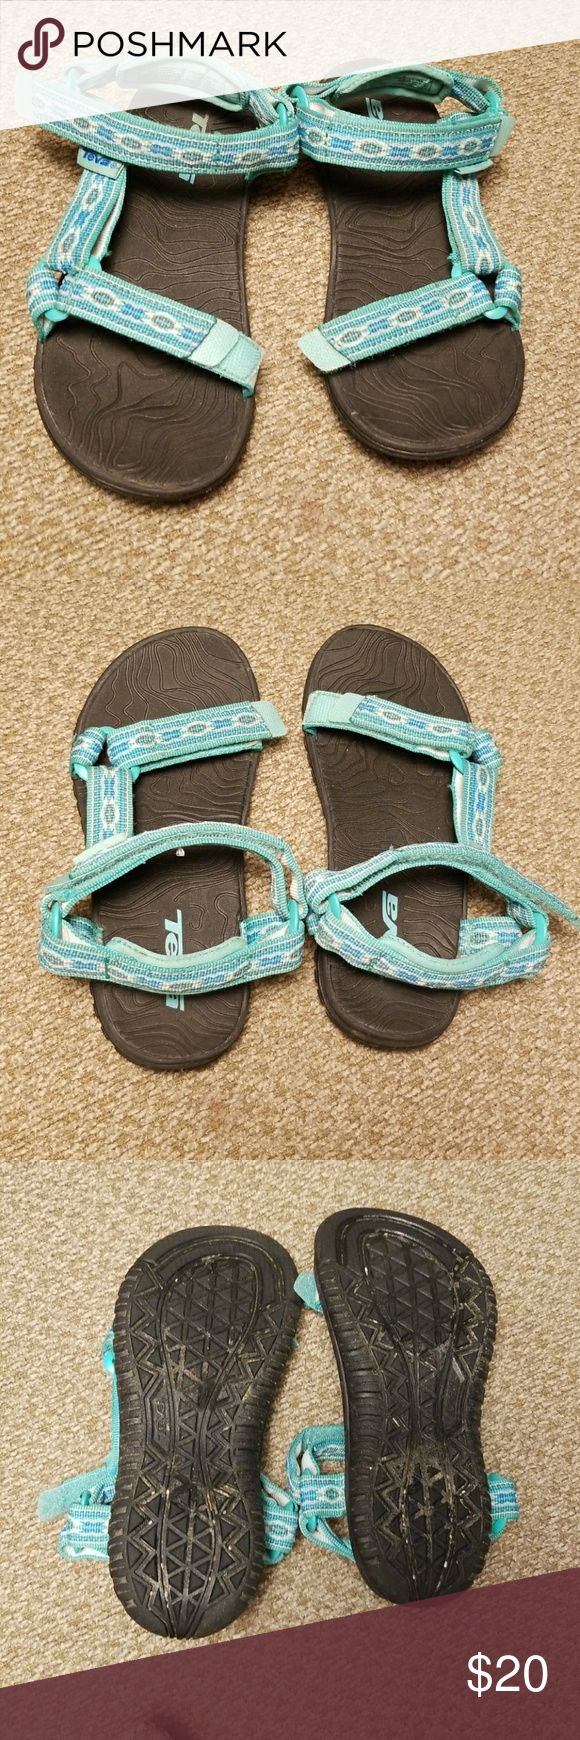 Kids Teva Hurricane 3 size 13 (toddler) Good used condition. Color/style is Monteray Florida Keys. Size 13. Excellent shoe to pack on vacation, or every day summer wear. Nice teal color can be a boys or girls sandal Teva Shoes Sandals & Flip Flops